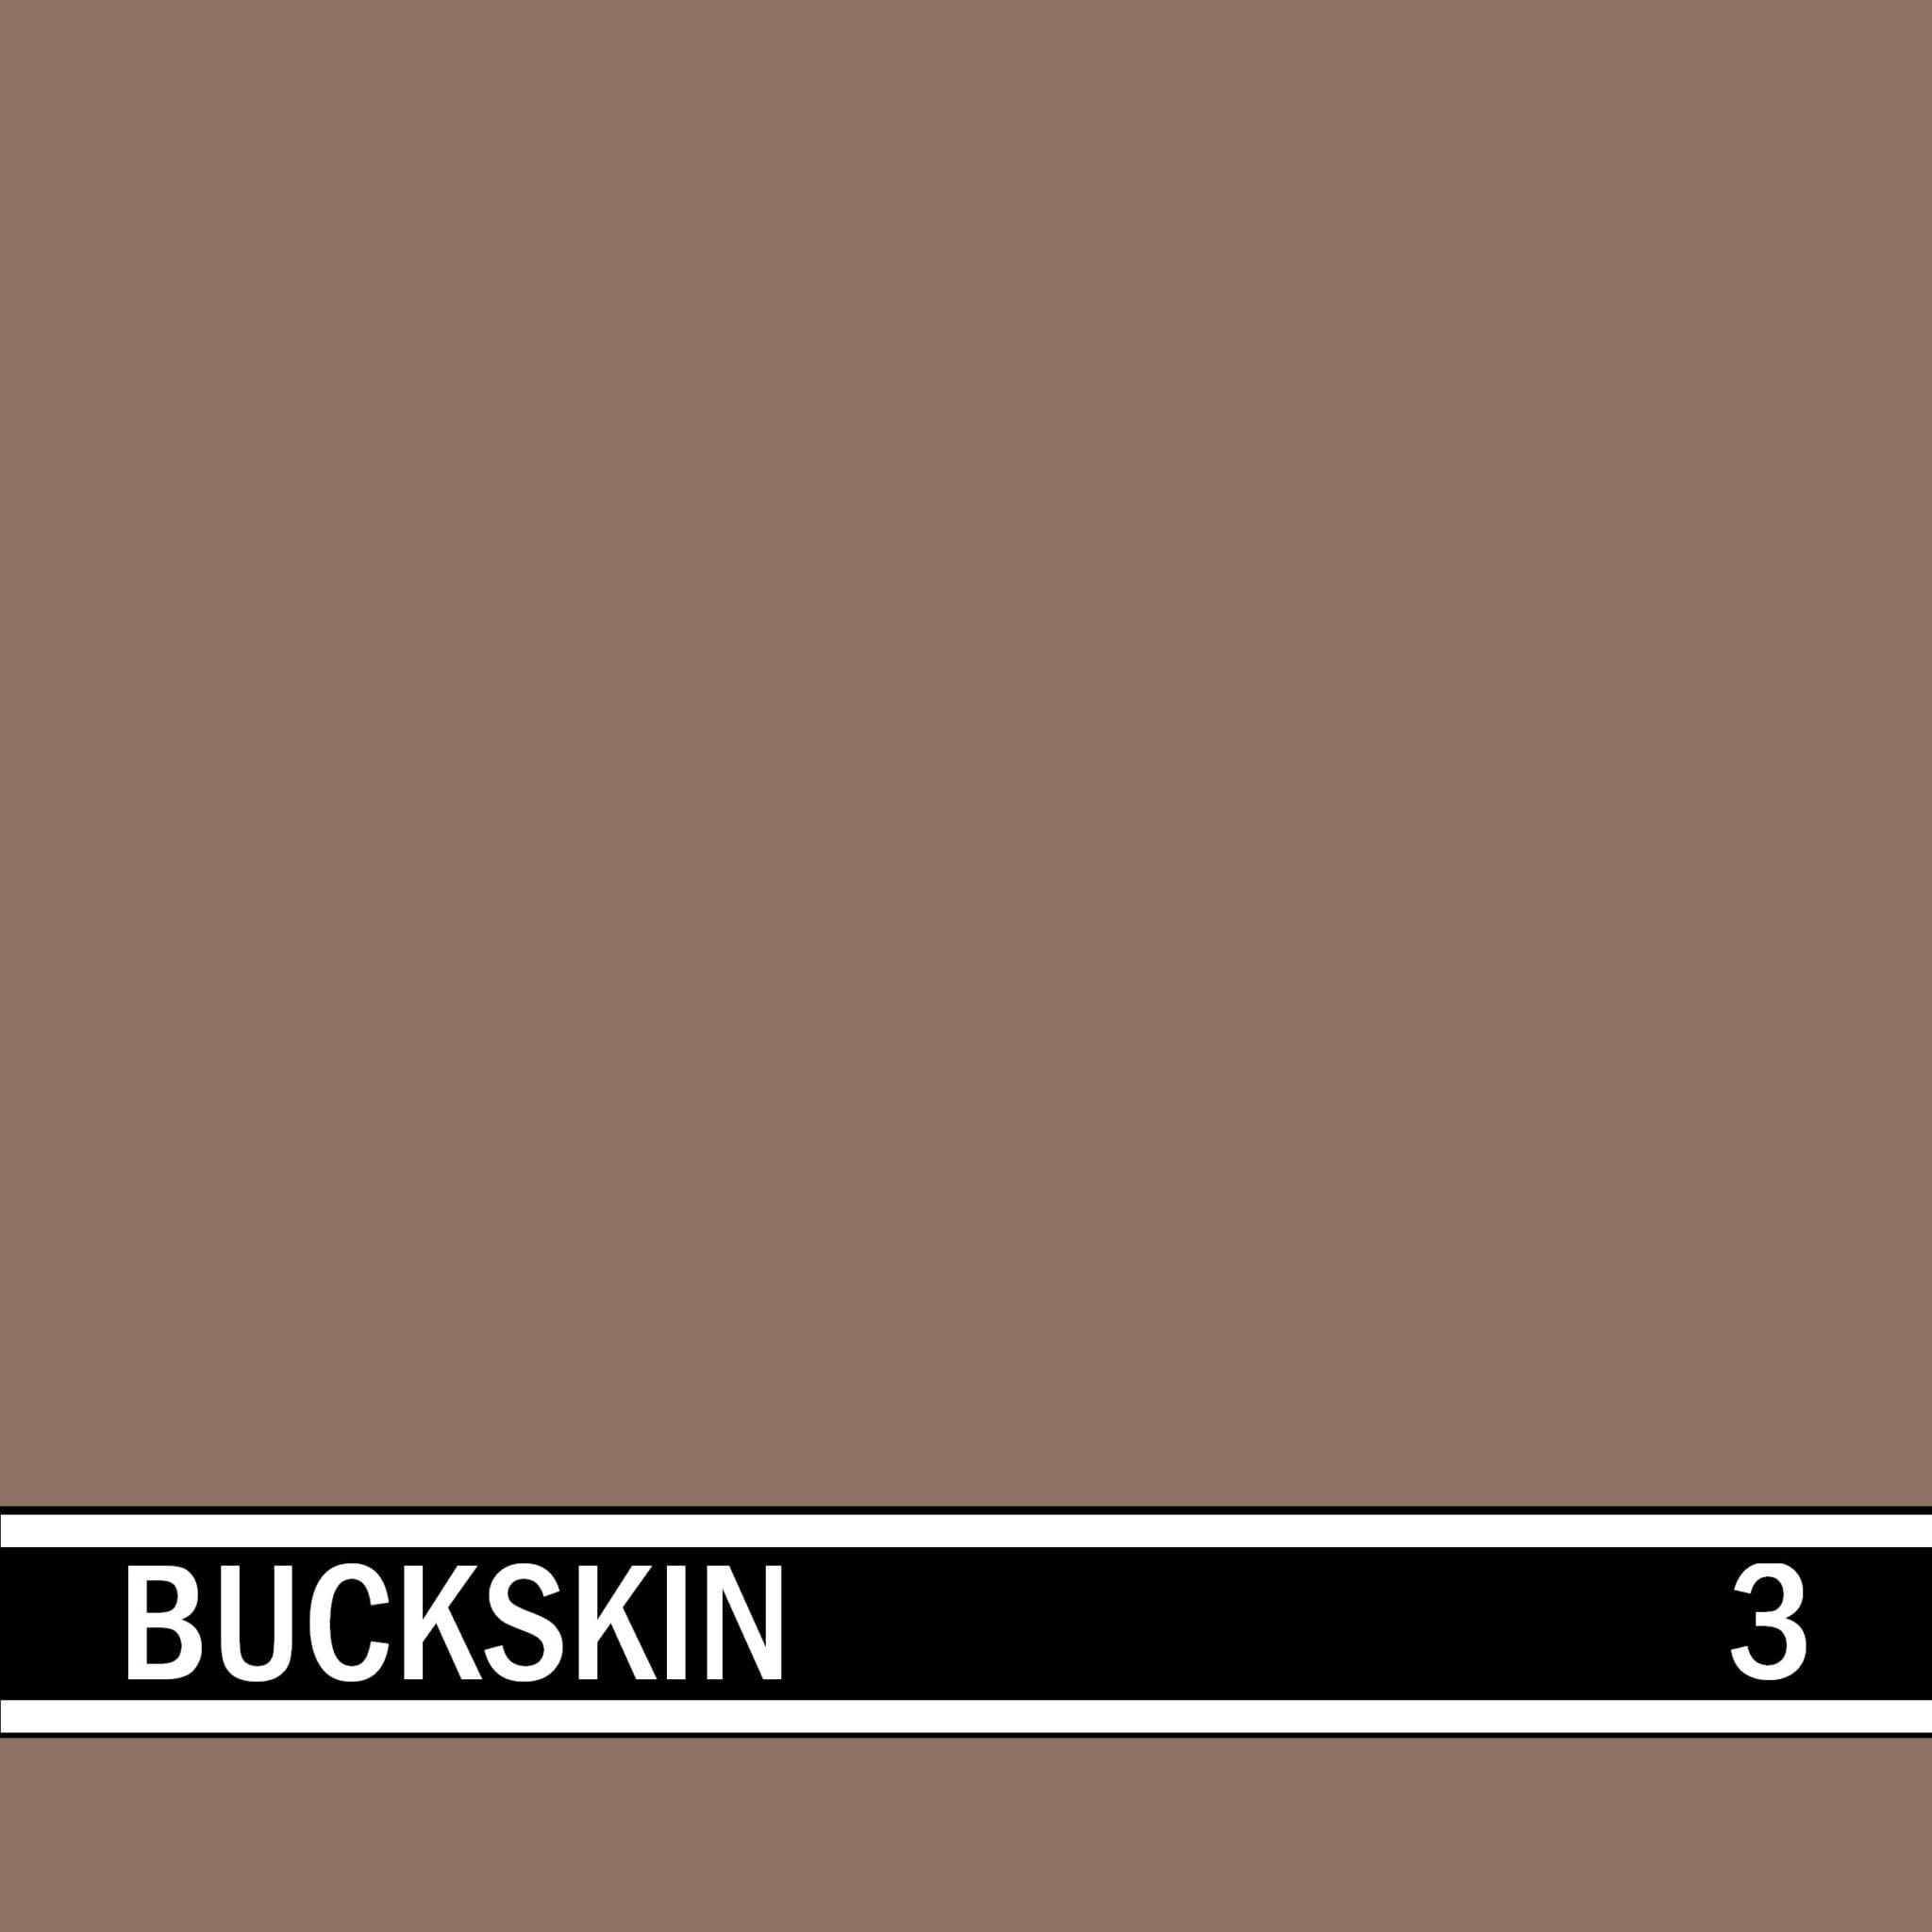 Buckskin integral concrete color for stamped concrete and decorative colored concrete